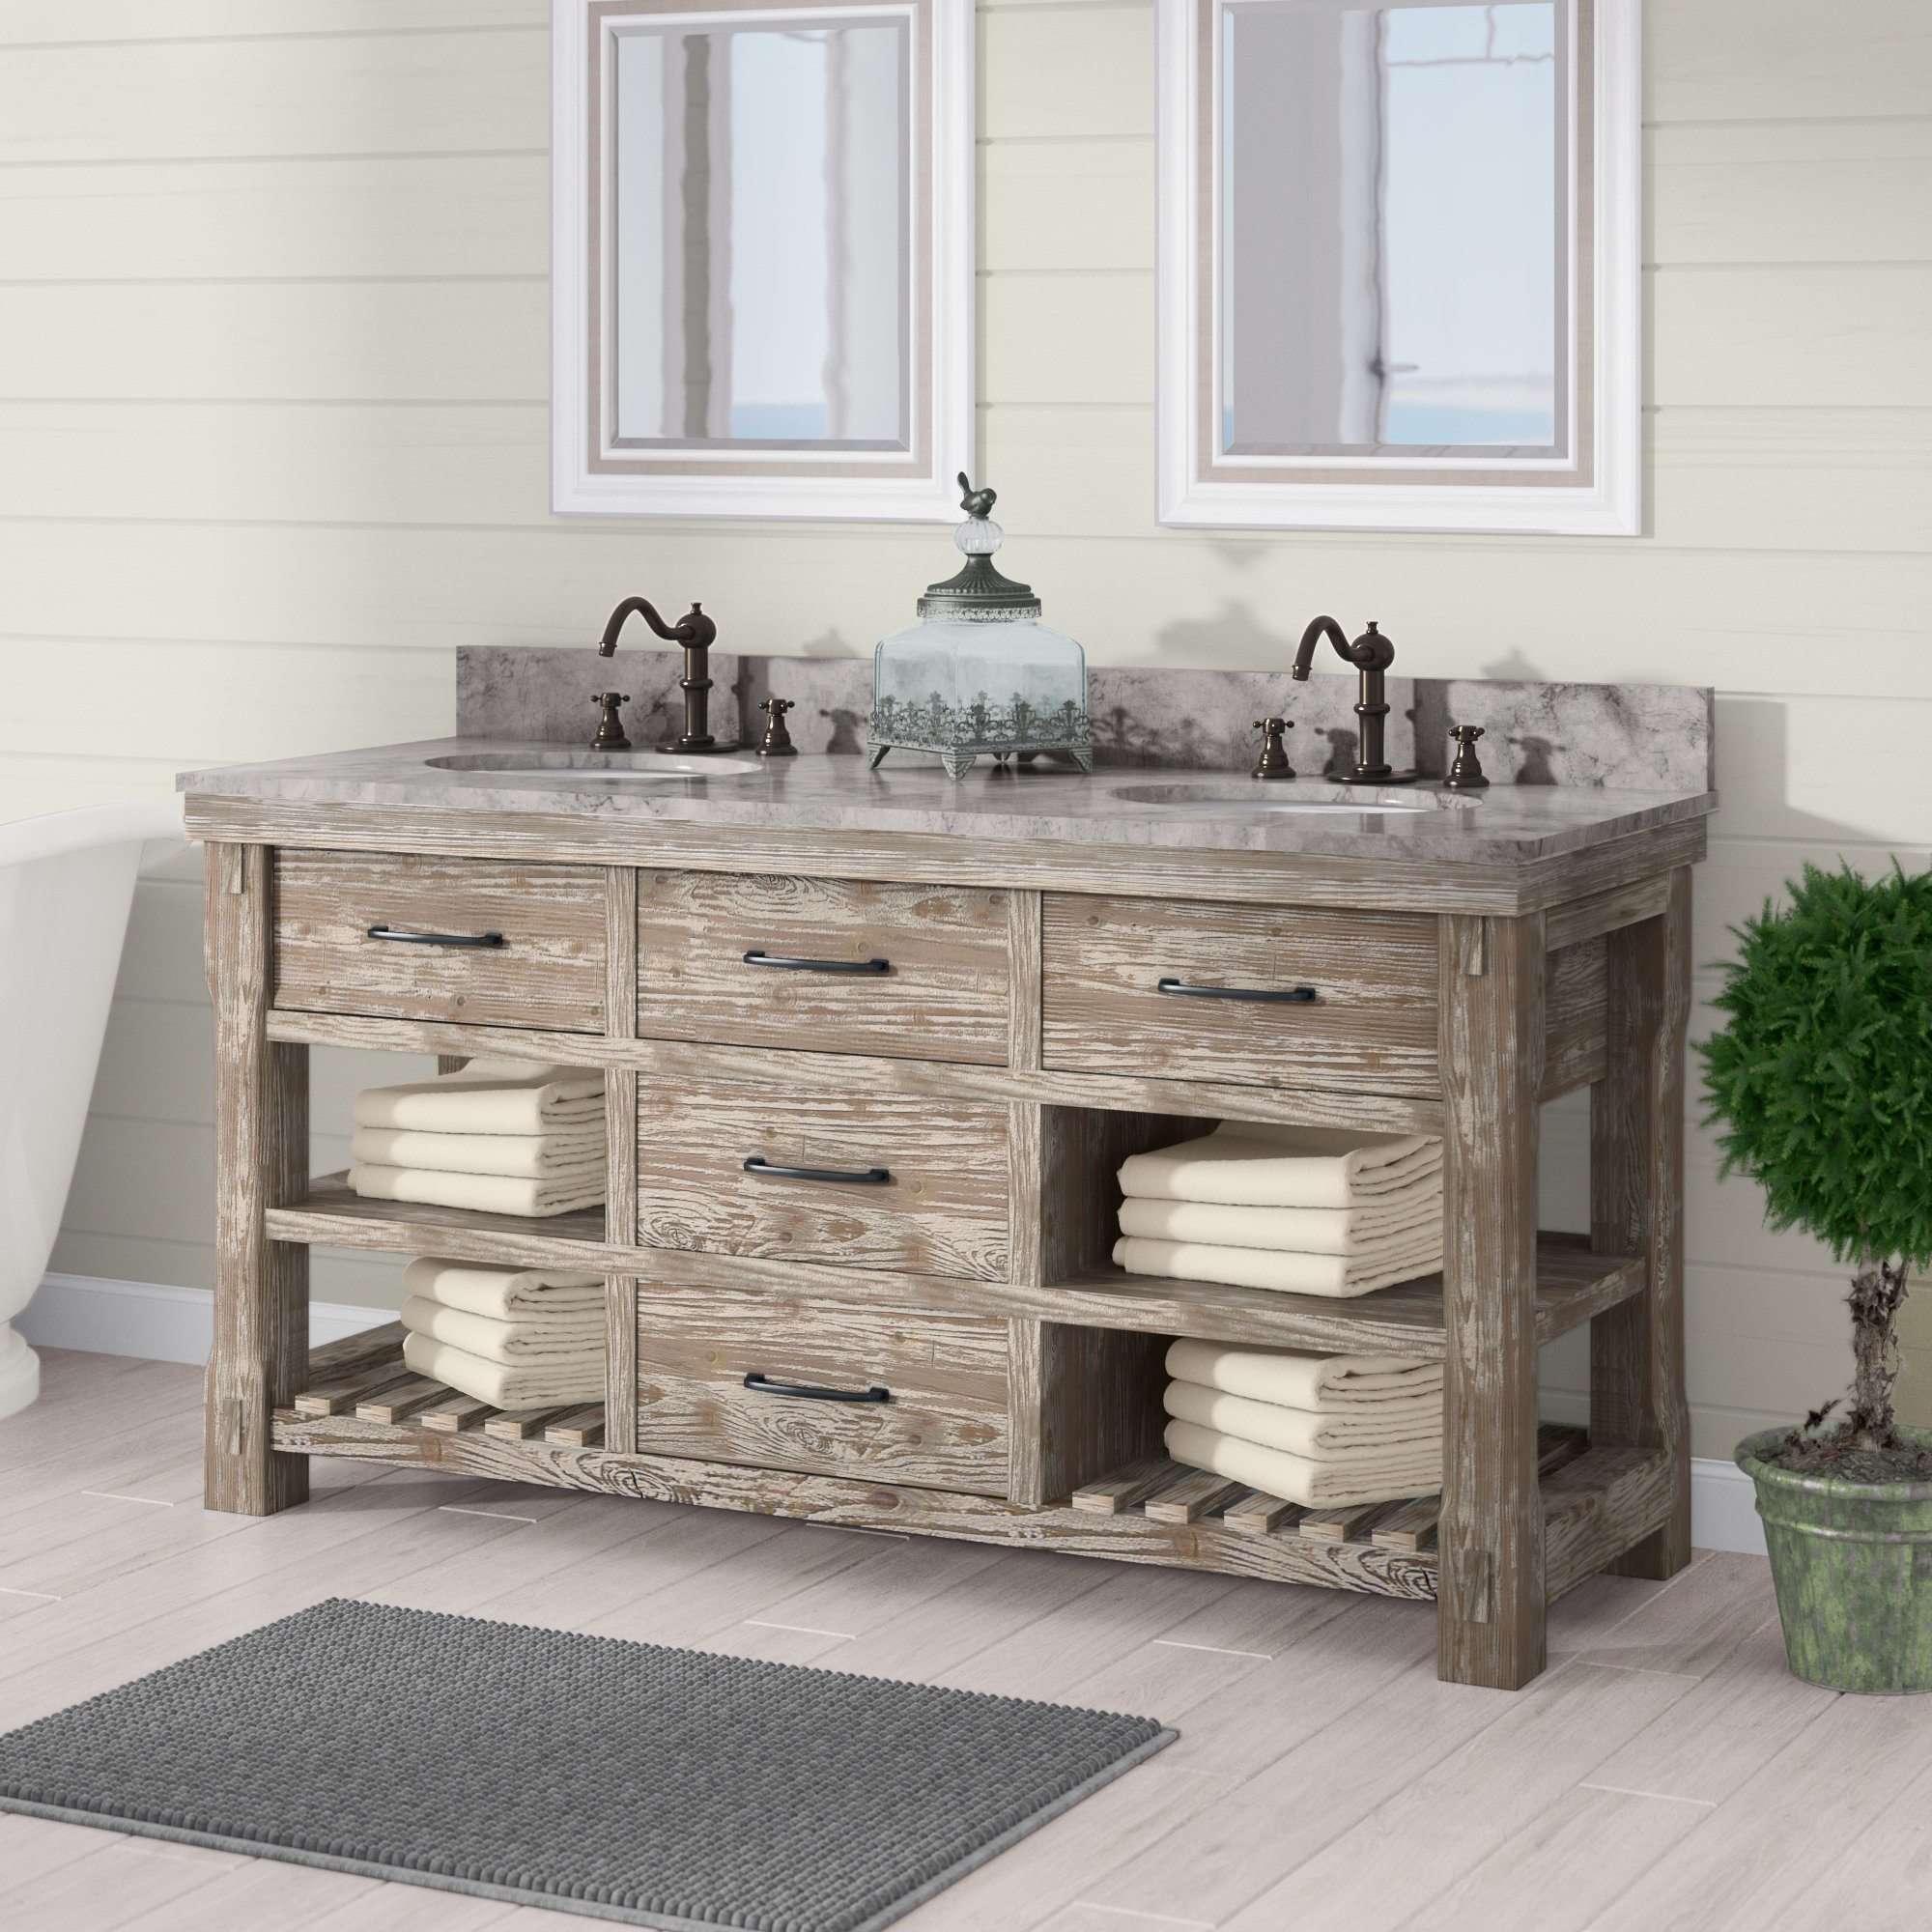 Laurel Foundry Modern Farmhouse Clemmie 61 Double Bathroom Vanity within sizing 2000 X 2000